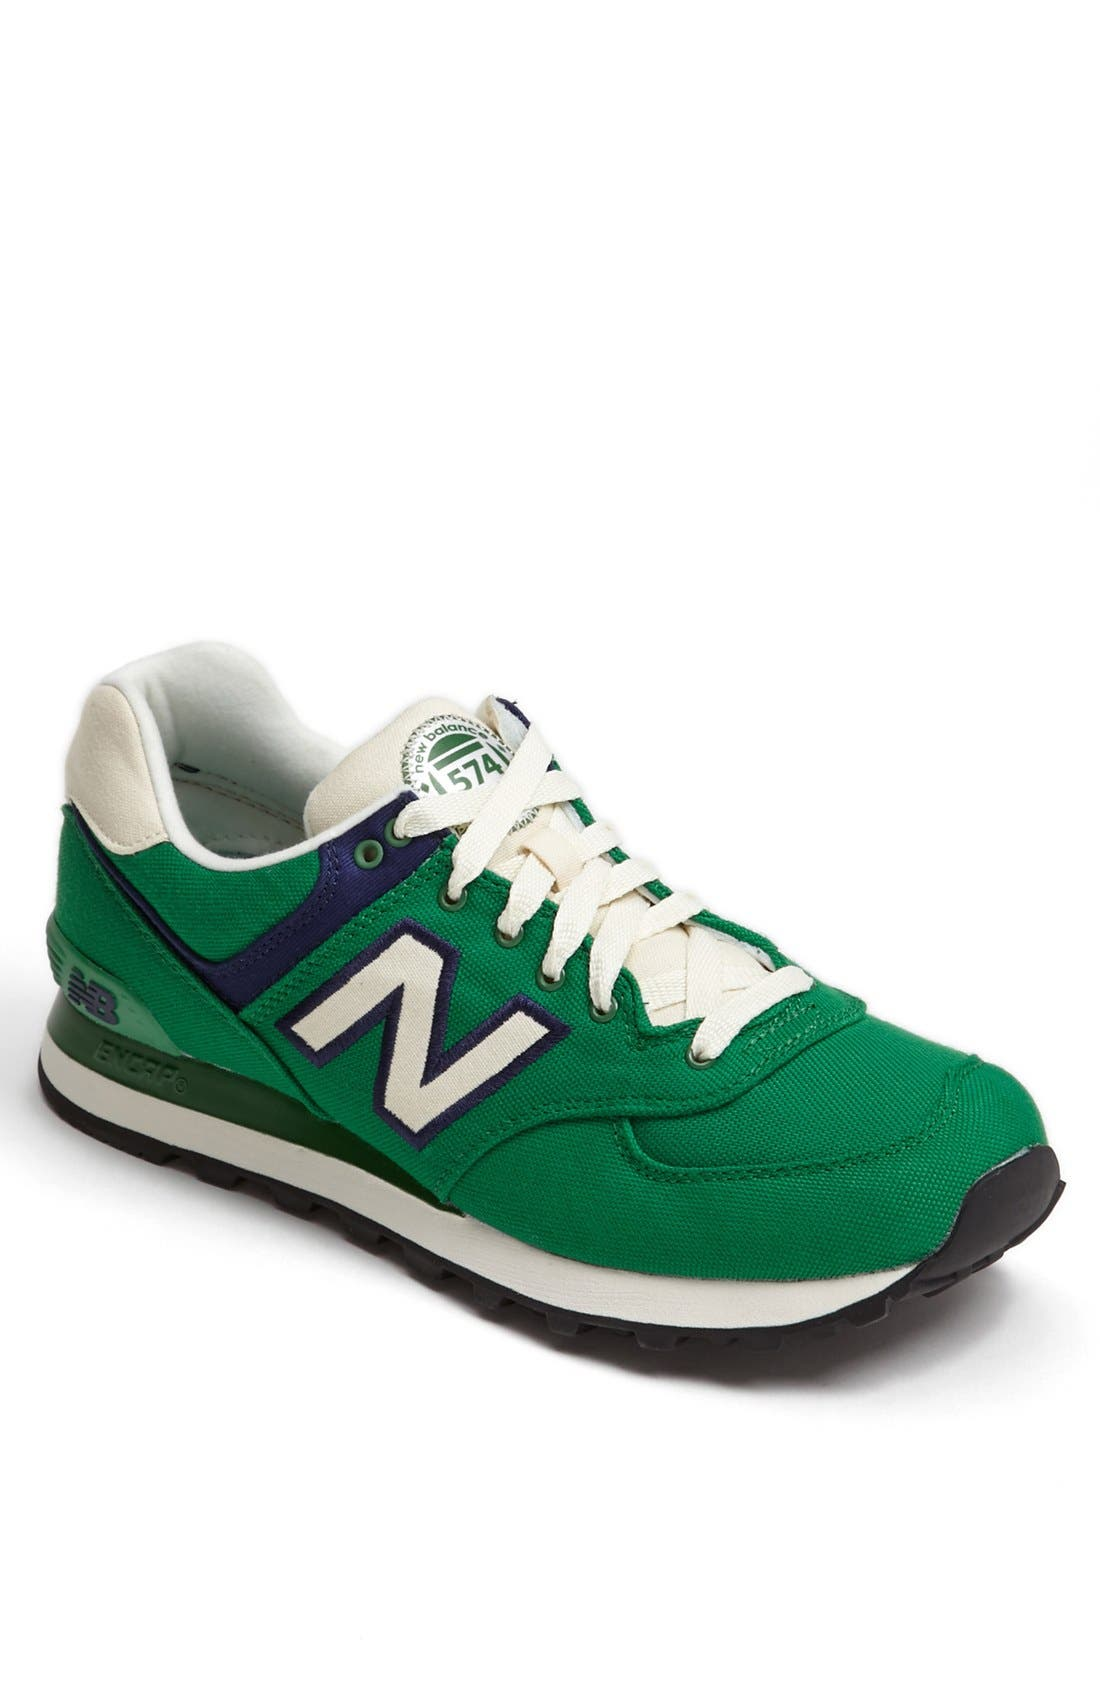 Main Image - New Balance '574 Rugby' Sneaker (Men)